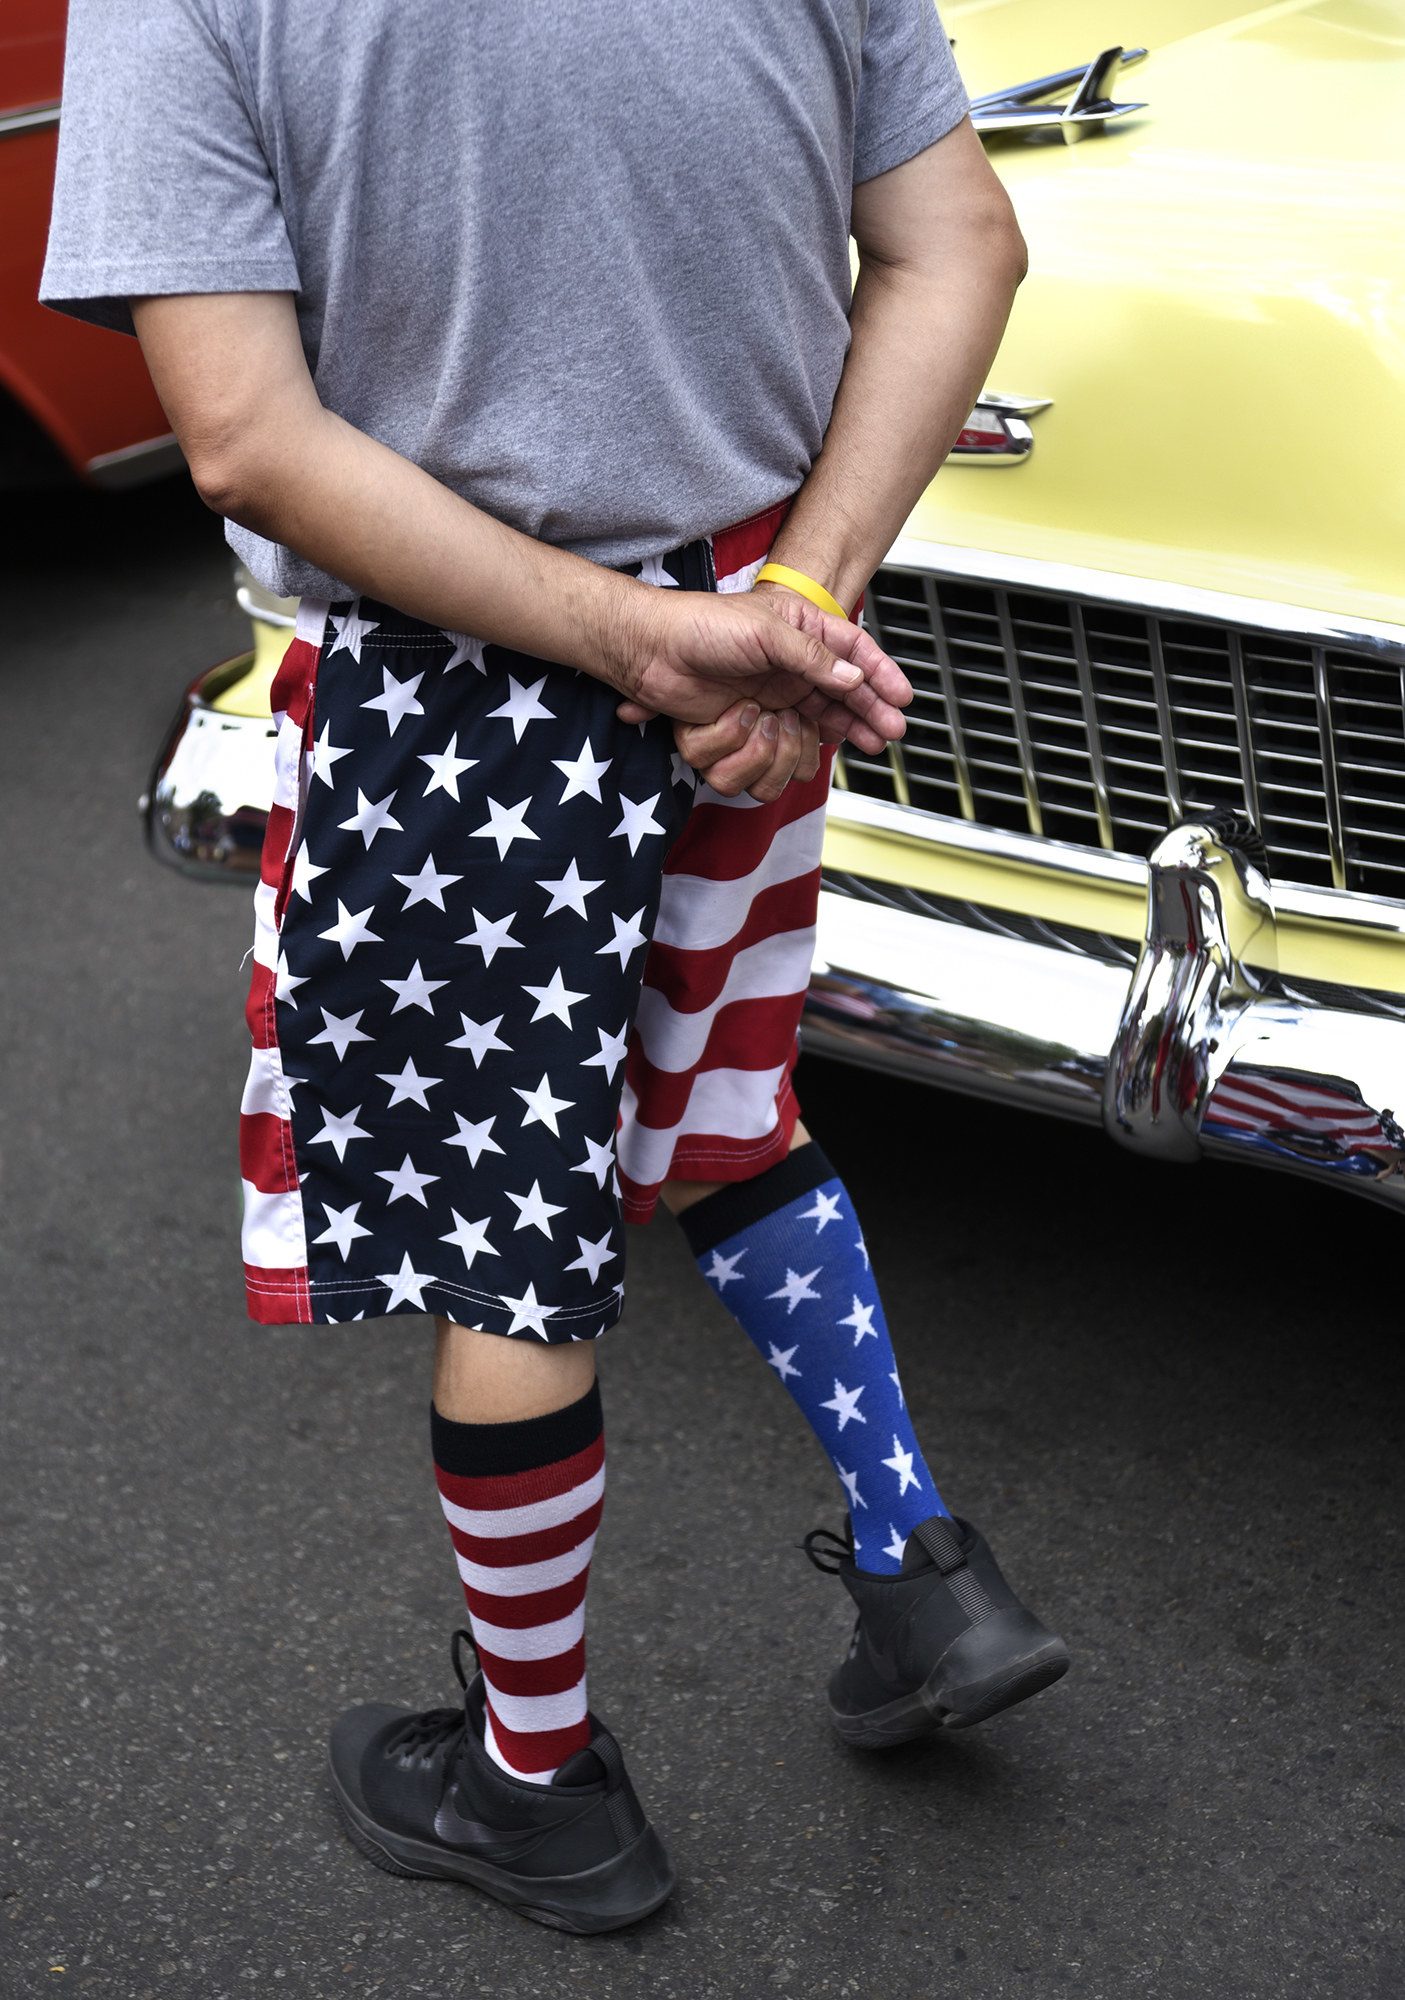 A man walks with his hands behind his backs with US flag shorts and socks of different colors and patterns, showing different parts of the flag